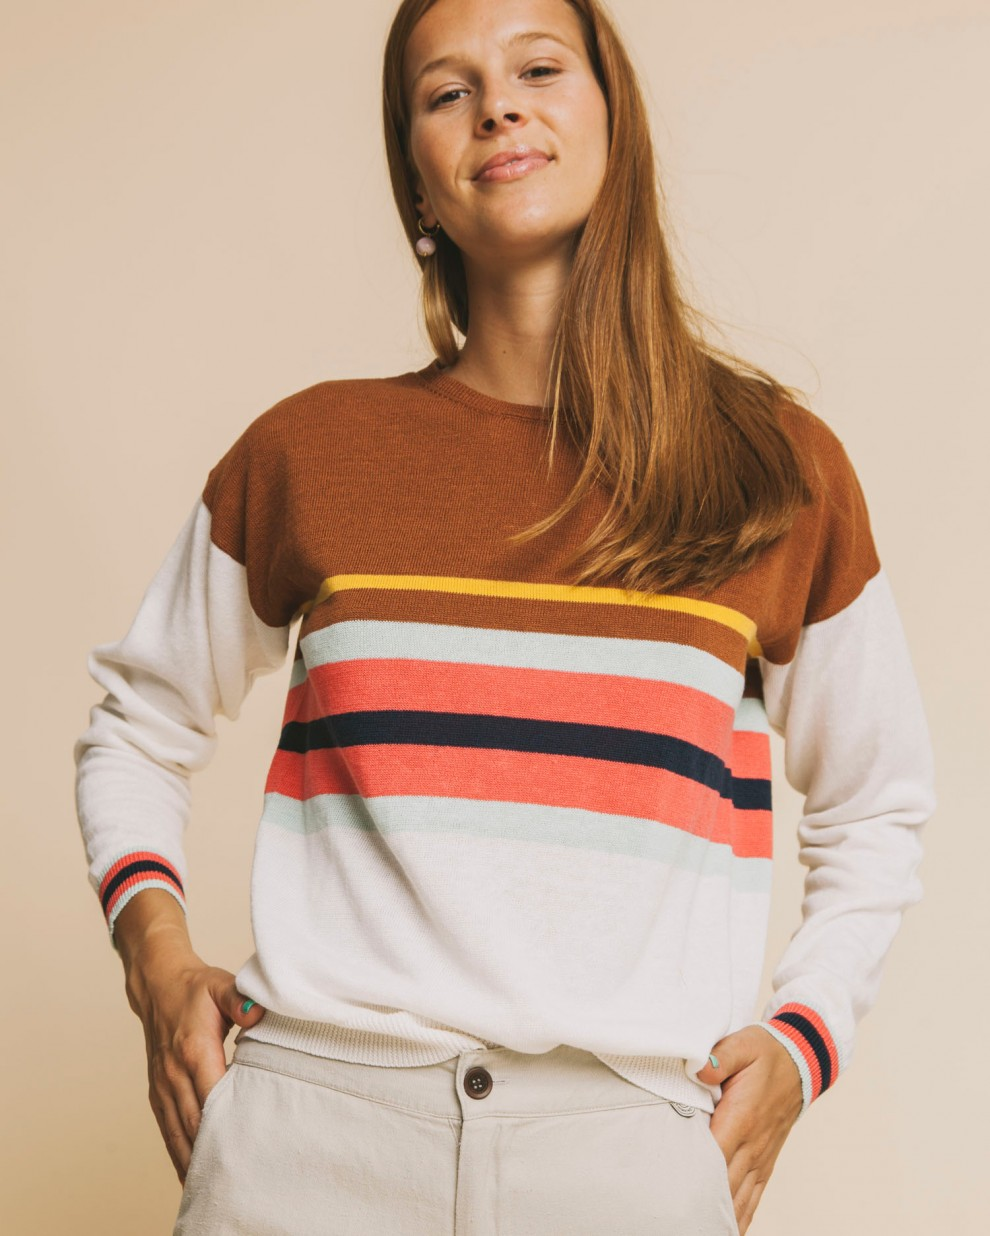 Sand Shebelle sweater